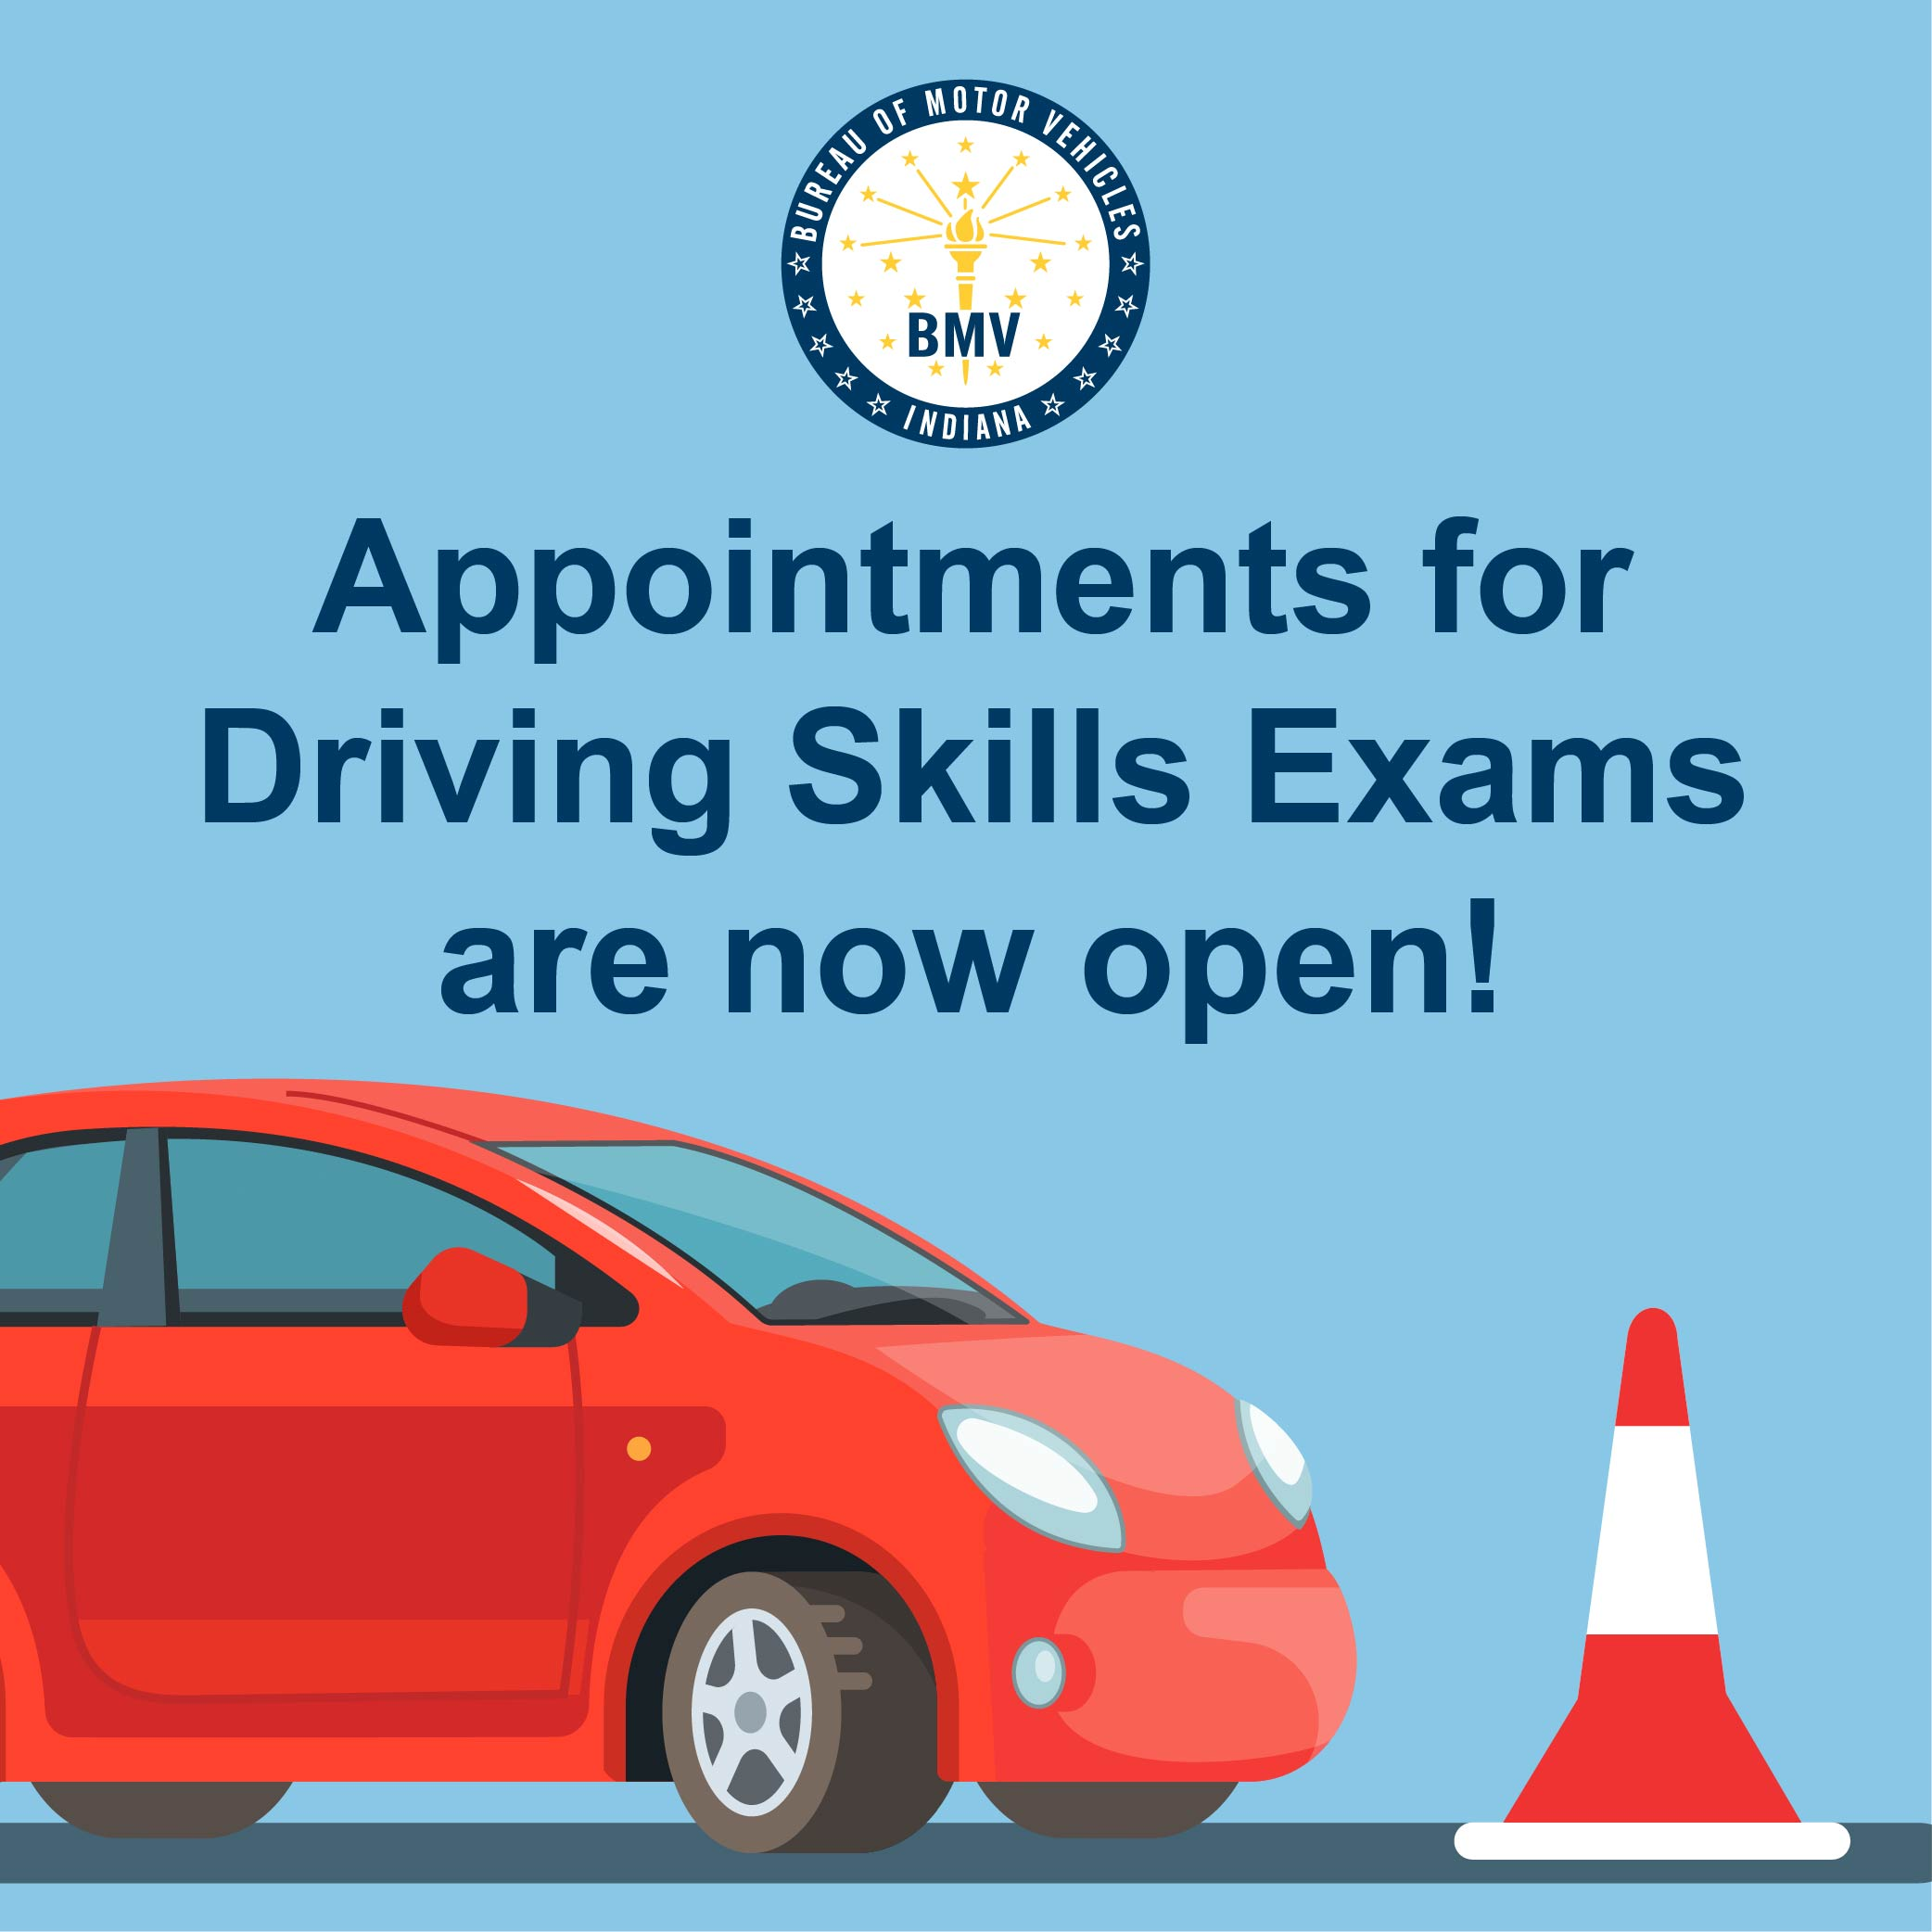 Appointments for Driving Skills Exams are now open!